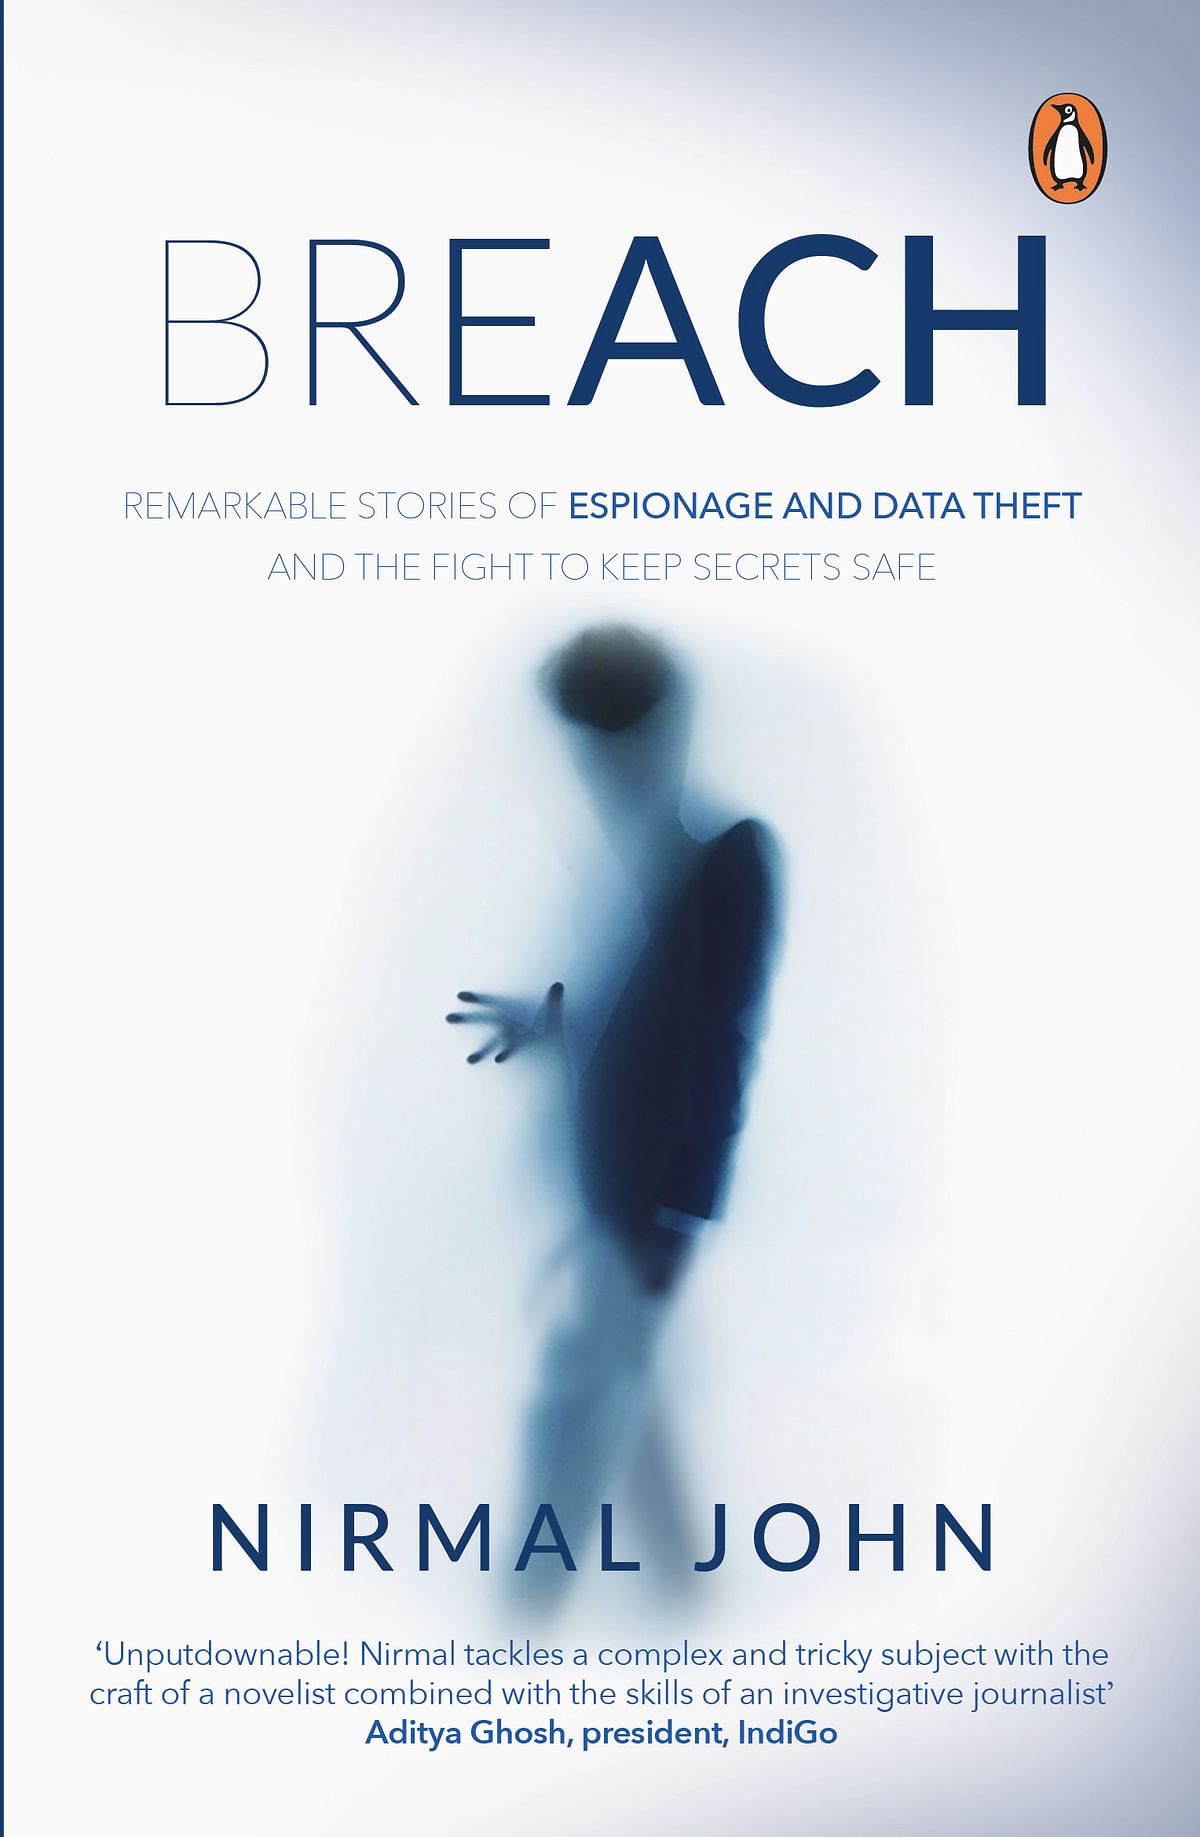 Cover of the book <i>'Breach</i>,' authored by Nirmal John.